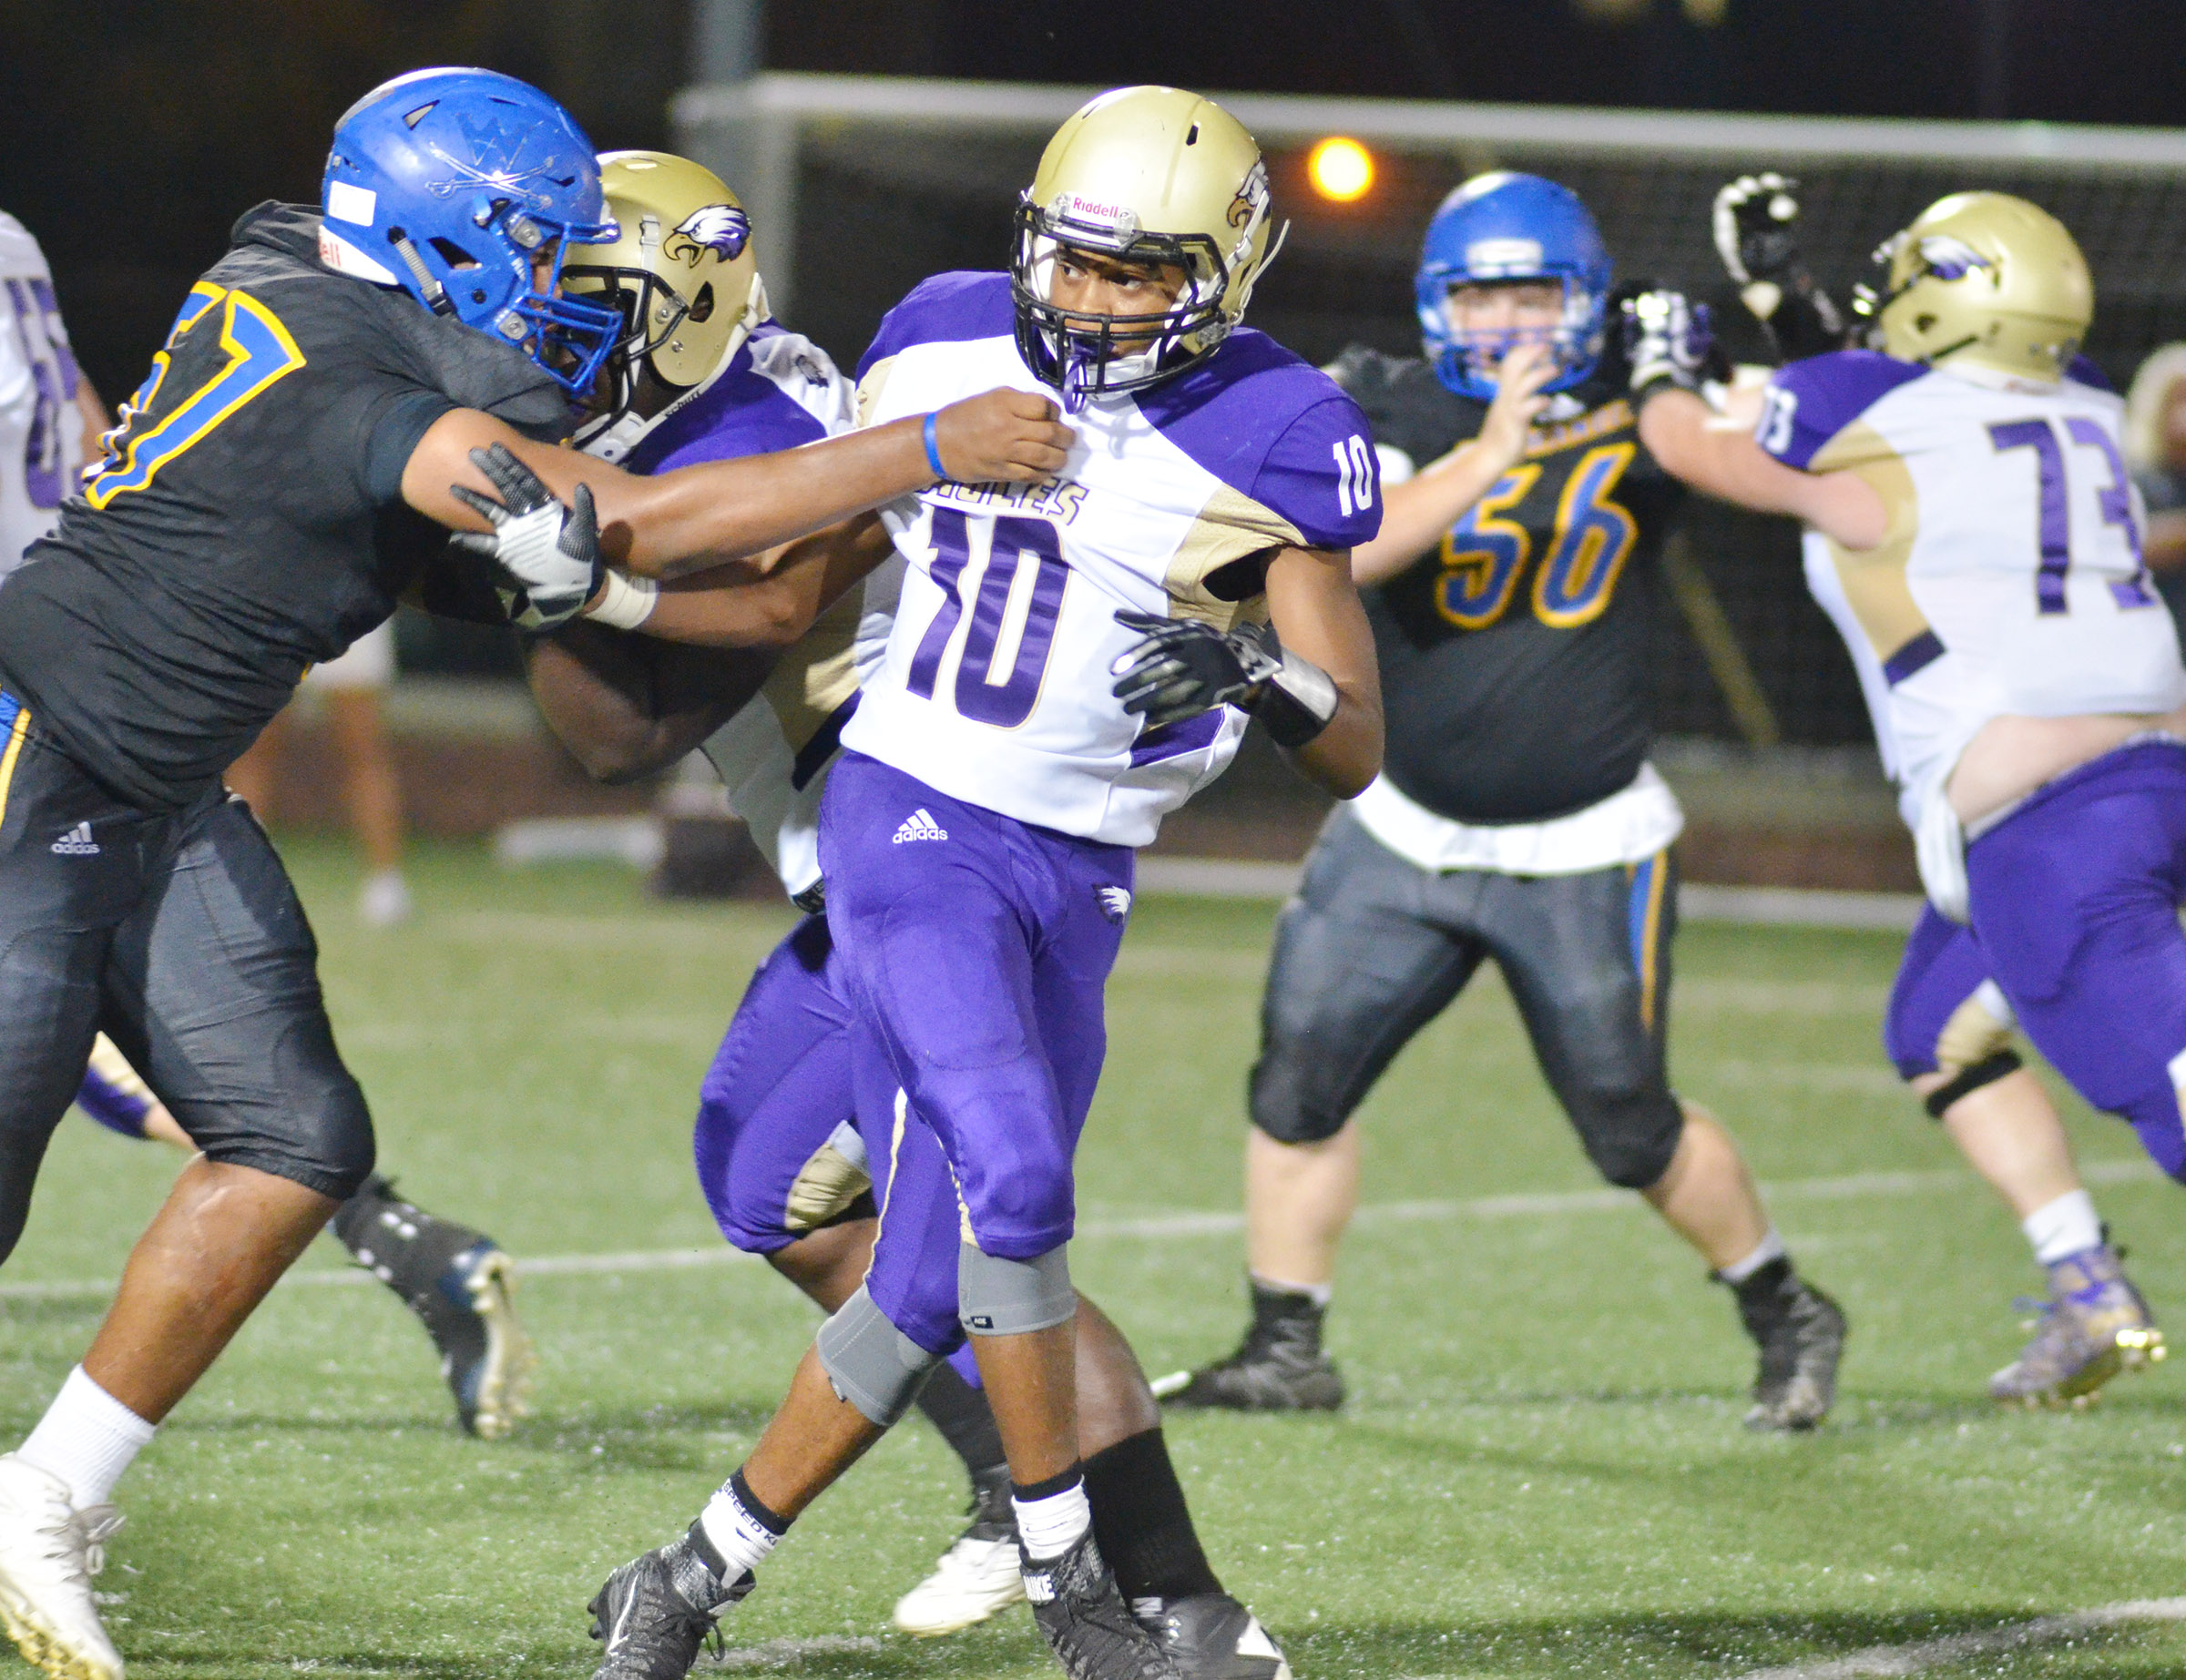 CHS senor Devonte Cubit tackles.